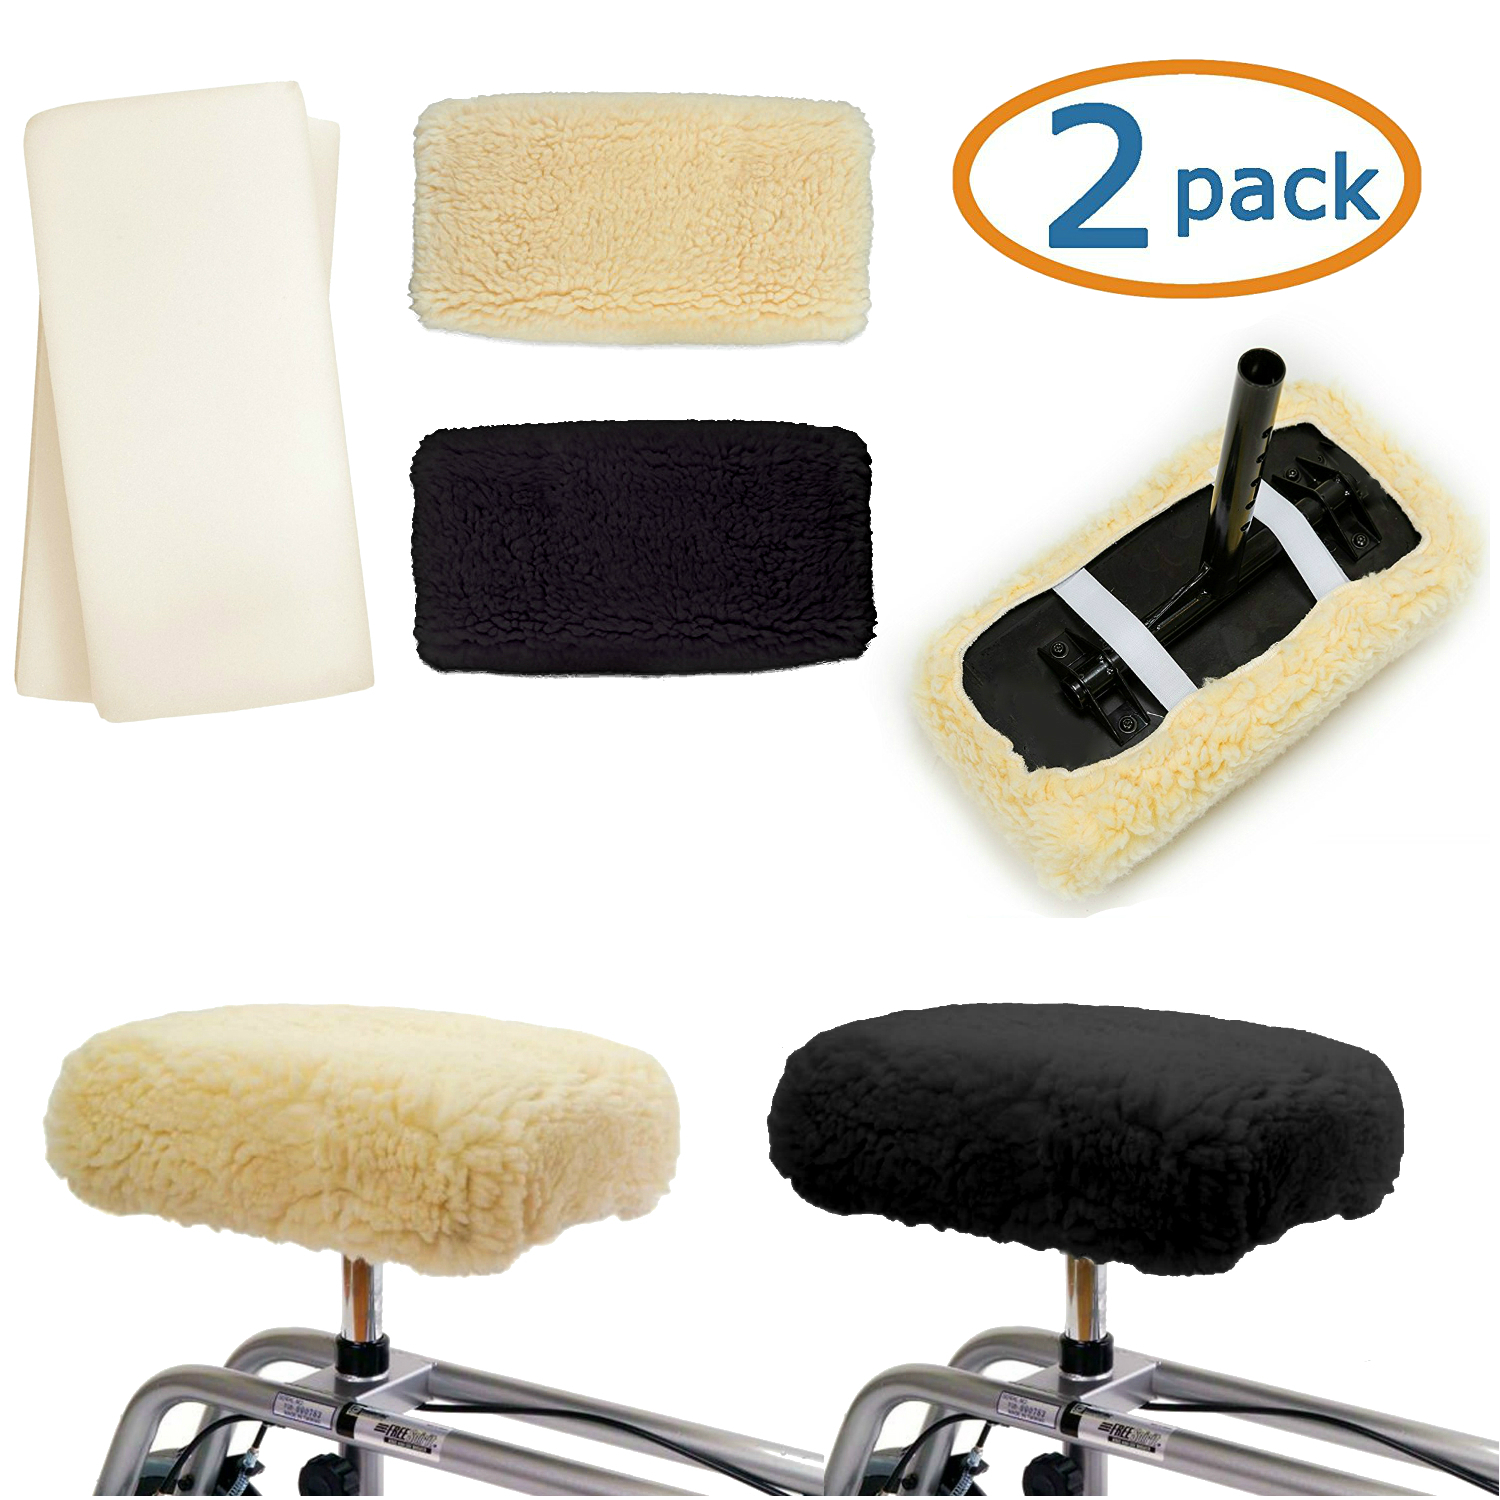 Knee Walker Cushion Covers 2 Pack For Knee Scooter For Injured Leg Universal Knee Scooter Pad Cover Faux Sheepette Knee Walker Seat Pads Covers For Rolling Scooter Includes 2 Extra Foam Inserts